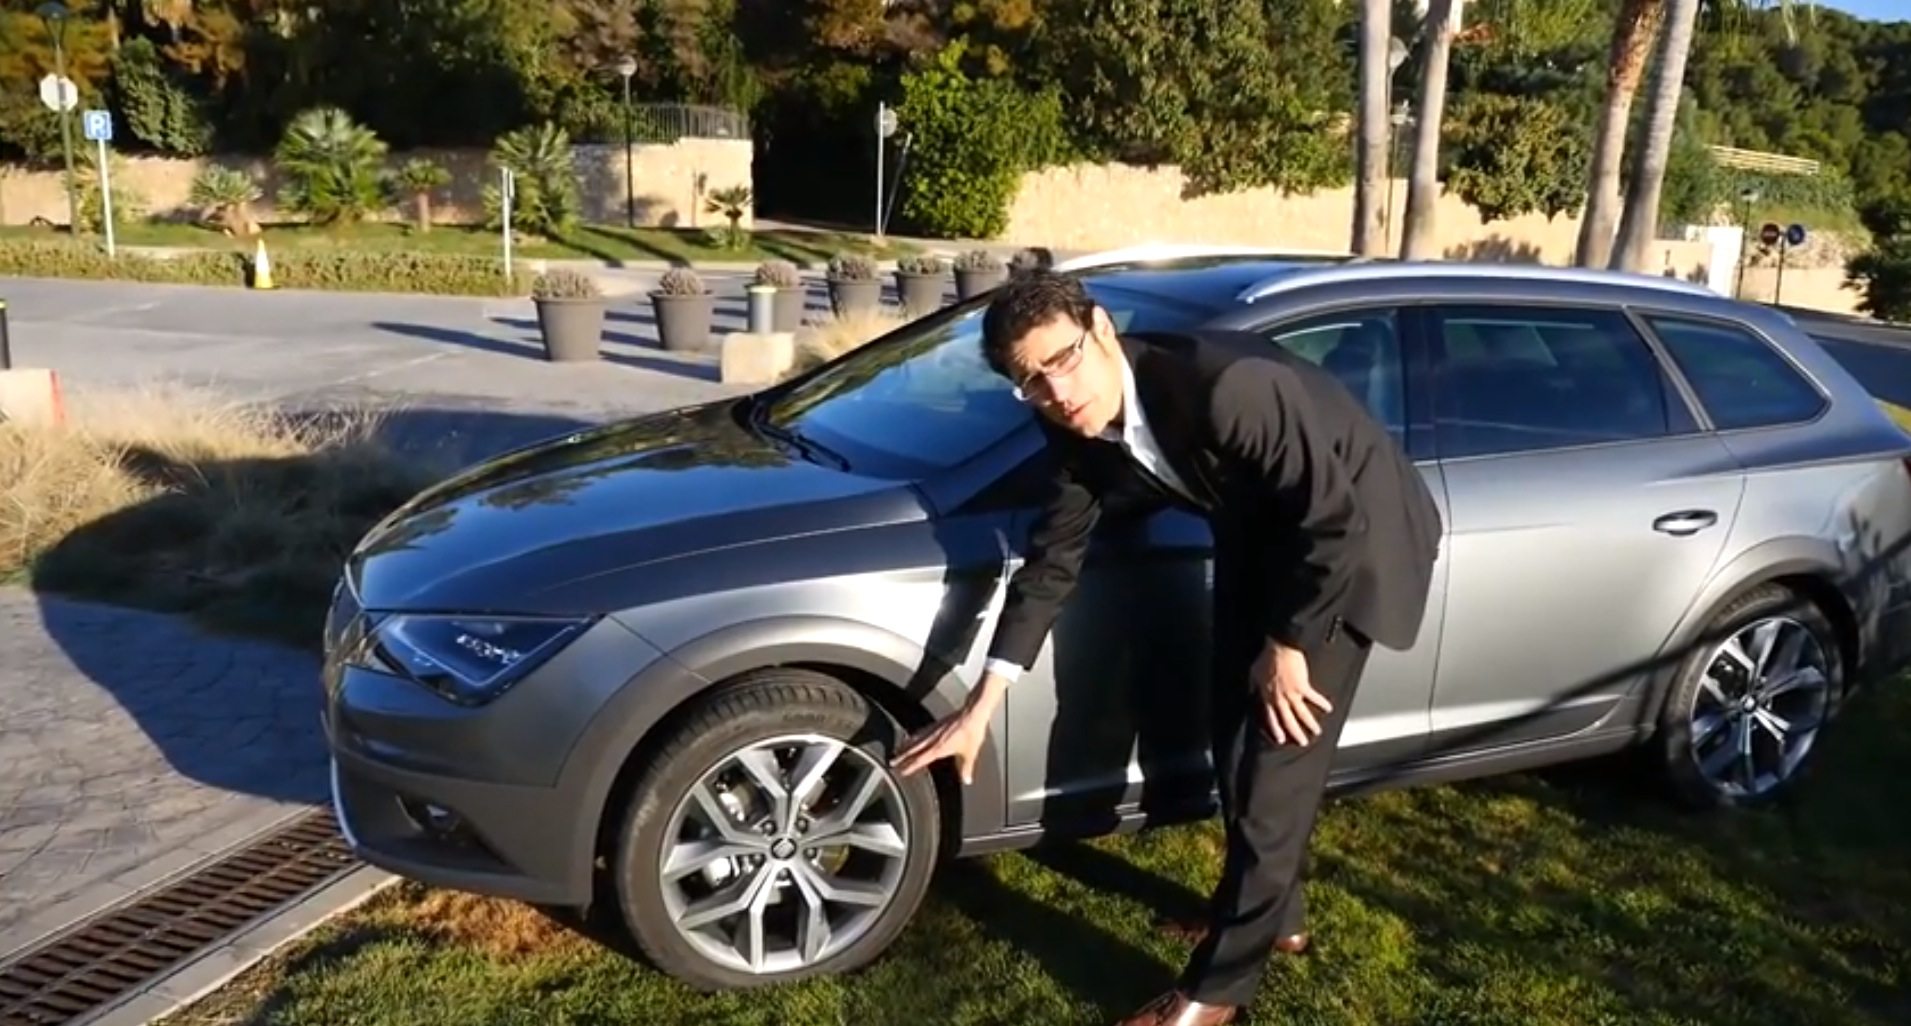 2015 seat leon x perience review says it 39 s good offroad. Black Bedroom Furniture Sets. Home Design Ideas